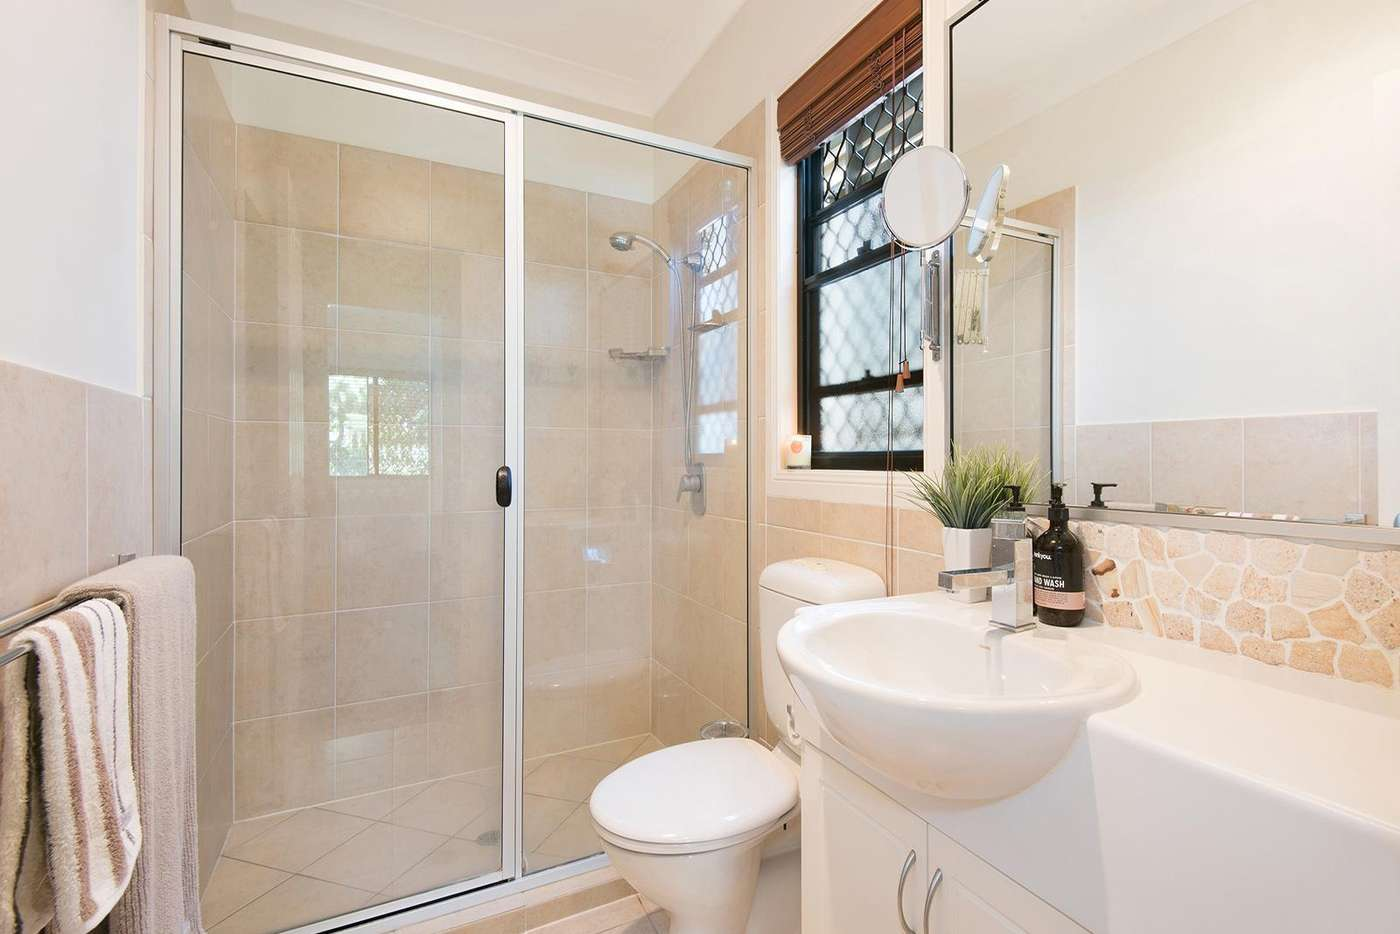 Seventh view of Homely house listing, 8 Ada Street, Toowong QLD 4066